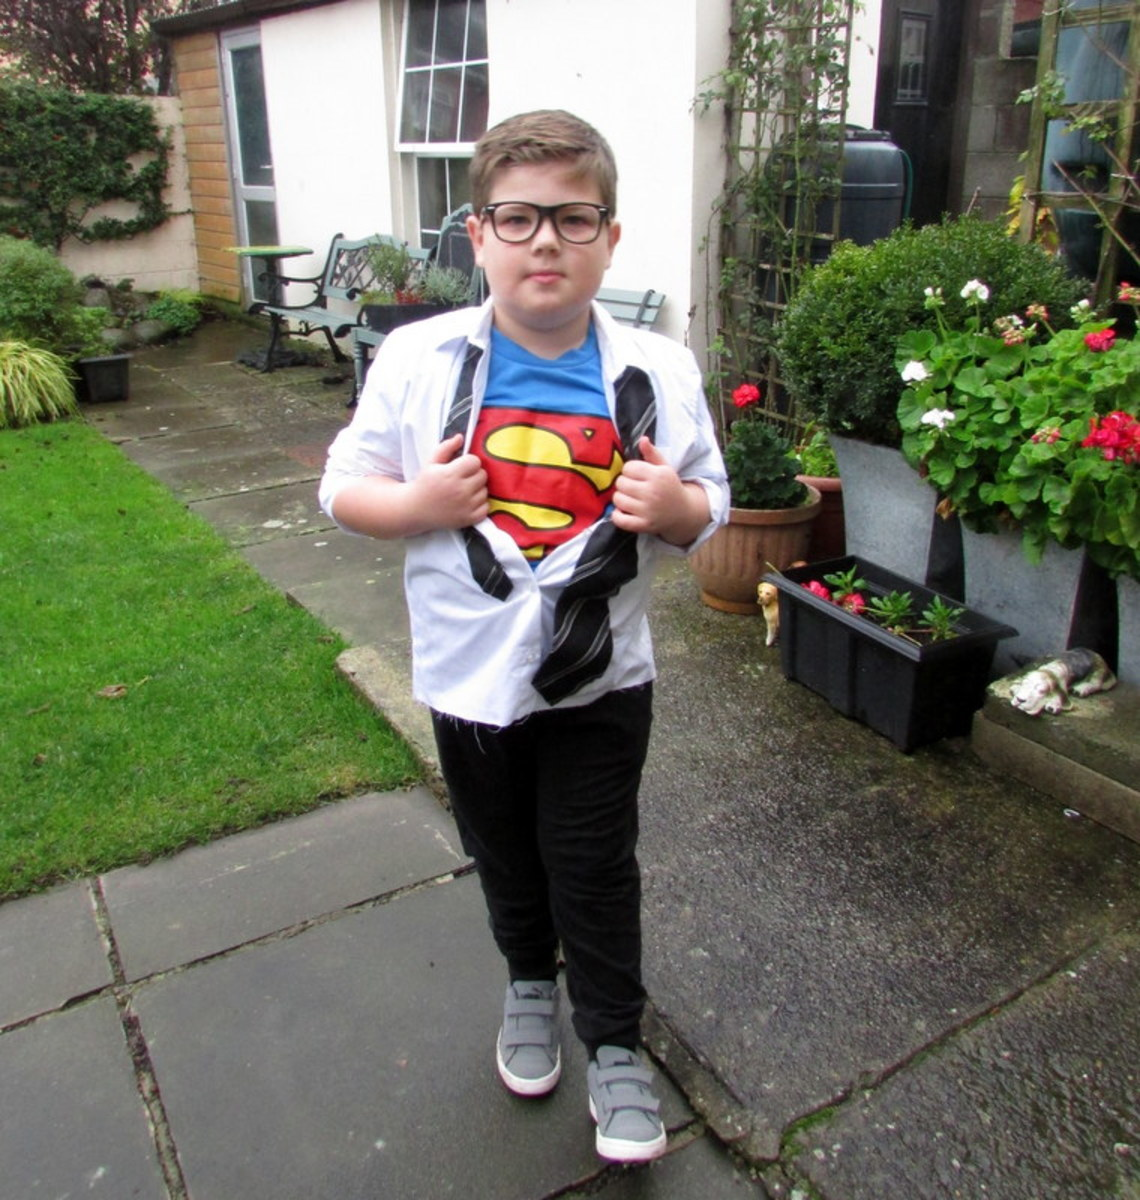 My son loves his Superman/Clark Kent costume.